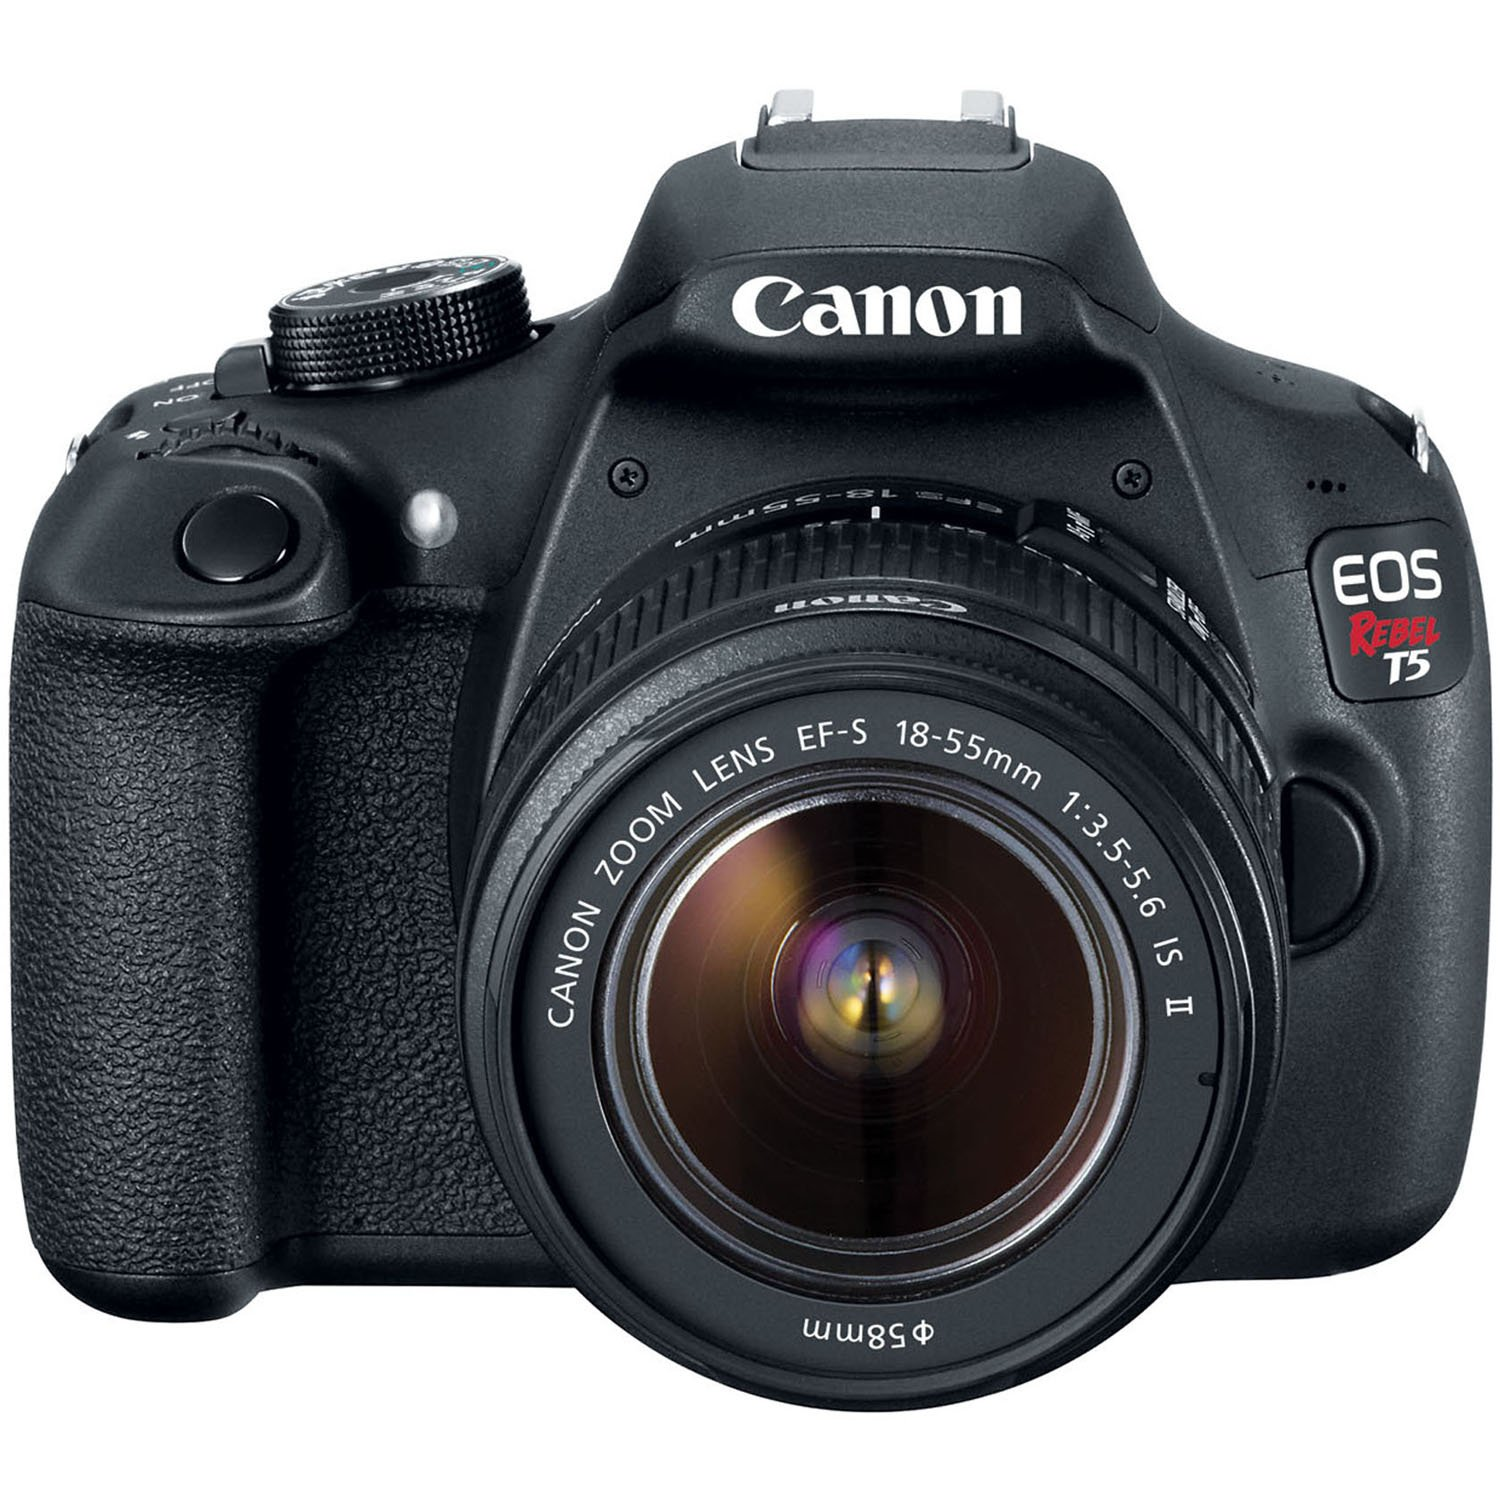 Camera Cheap Dslr Cameras Canada canon eos rebel t5 is 18mp digital slr camera with 18 55mm lens kit amazon ca photo